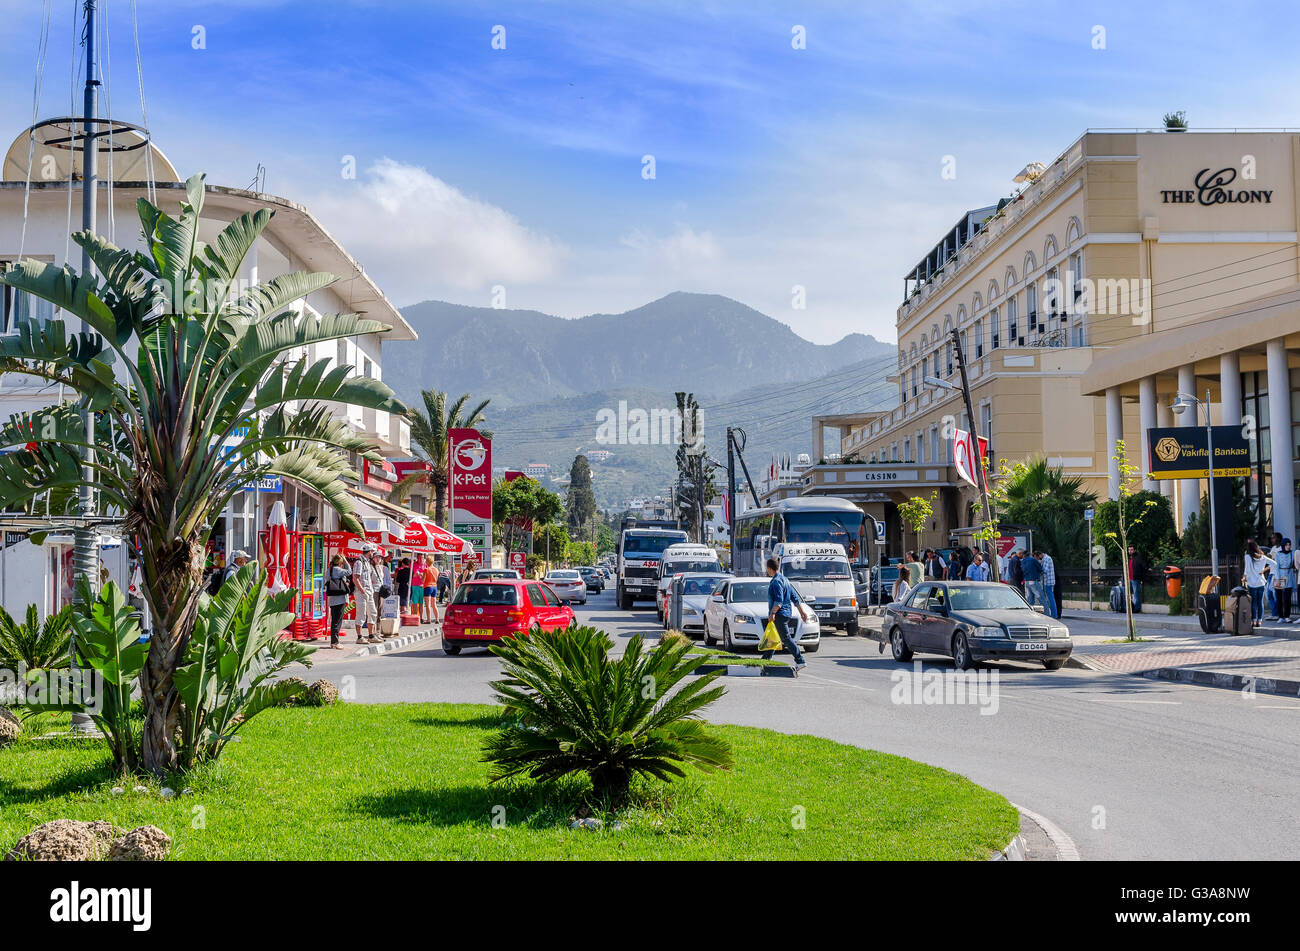 Traffic driving along a street in the city of Kyrenia, Northern Cyprus. - Stock Image